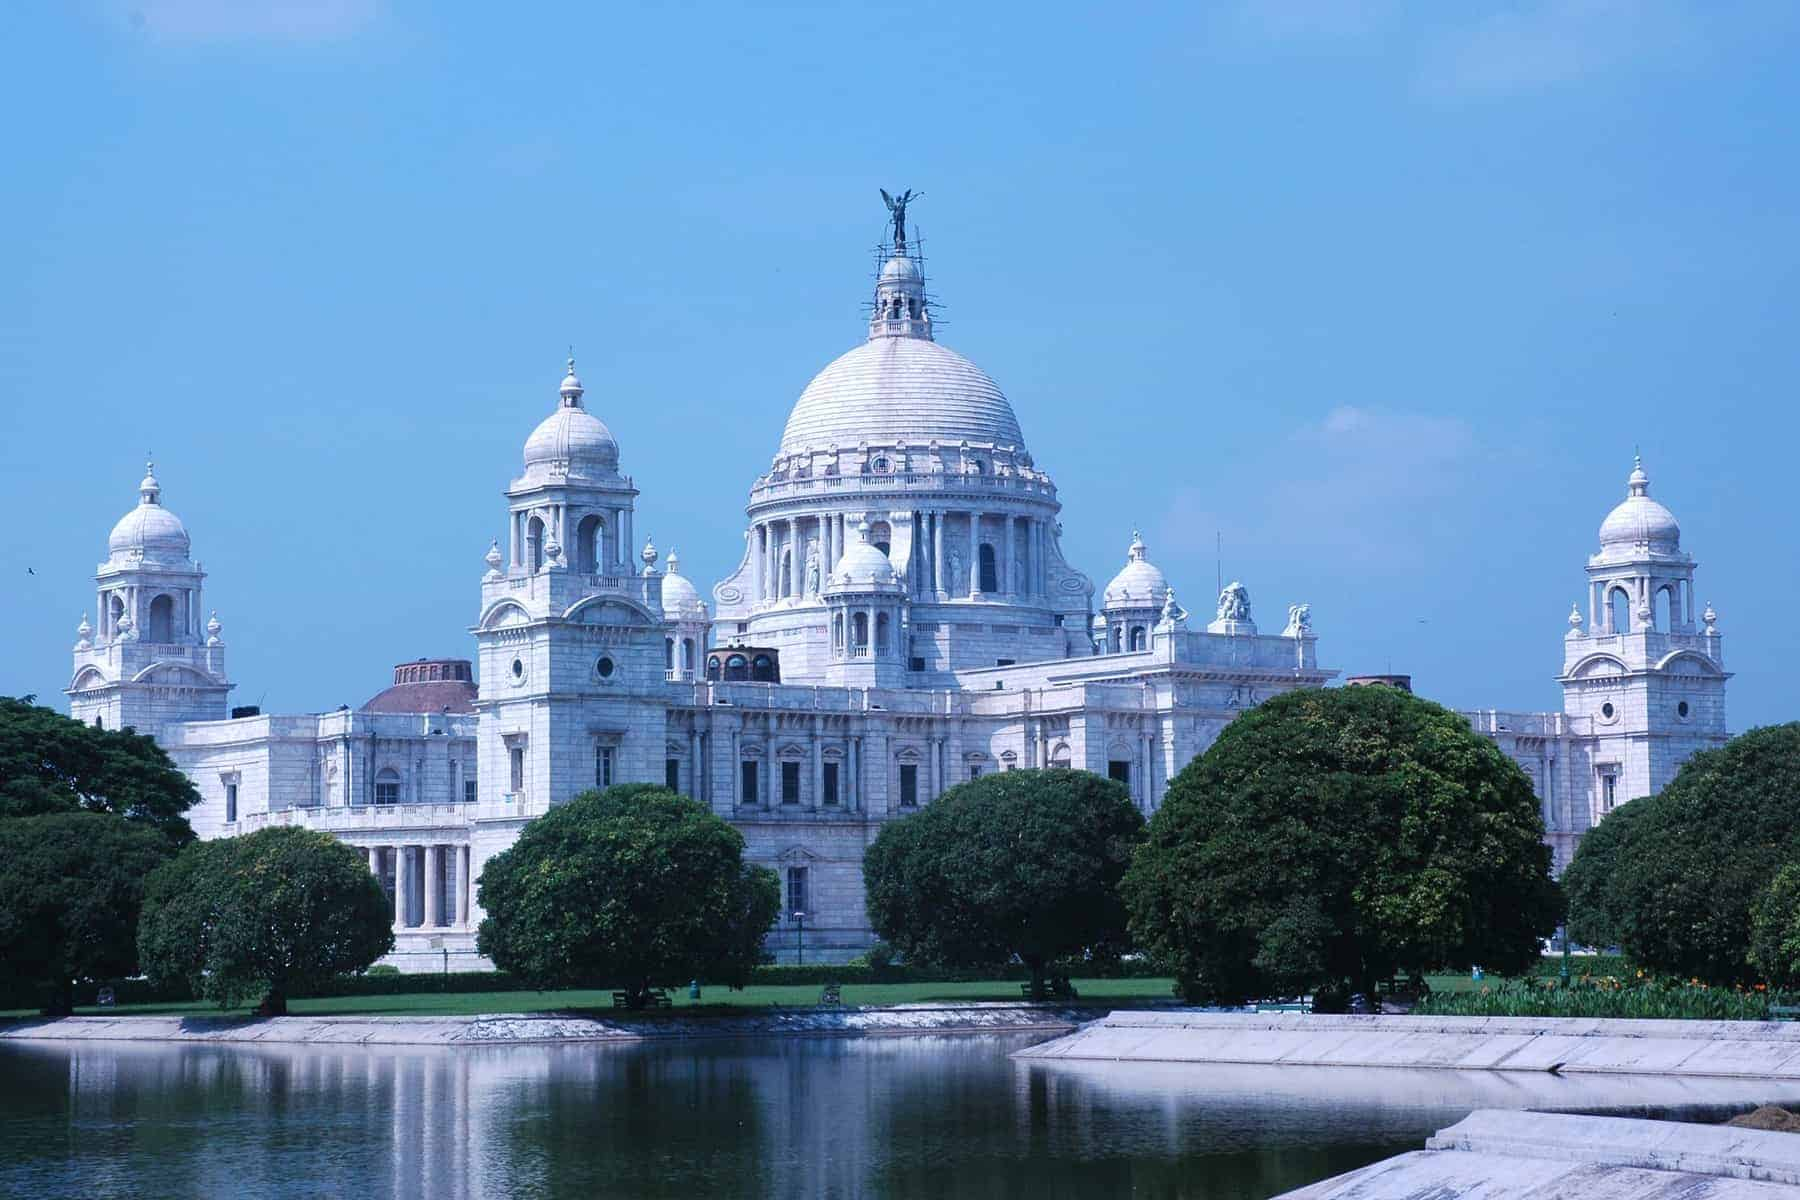 The full view of Victoria Memorial, Kolkata (Calcutta), India, in a bright and sunny day.